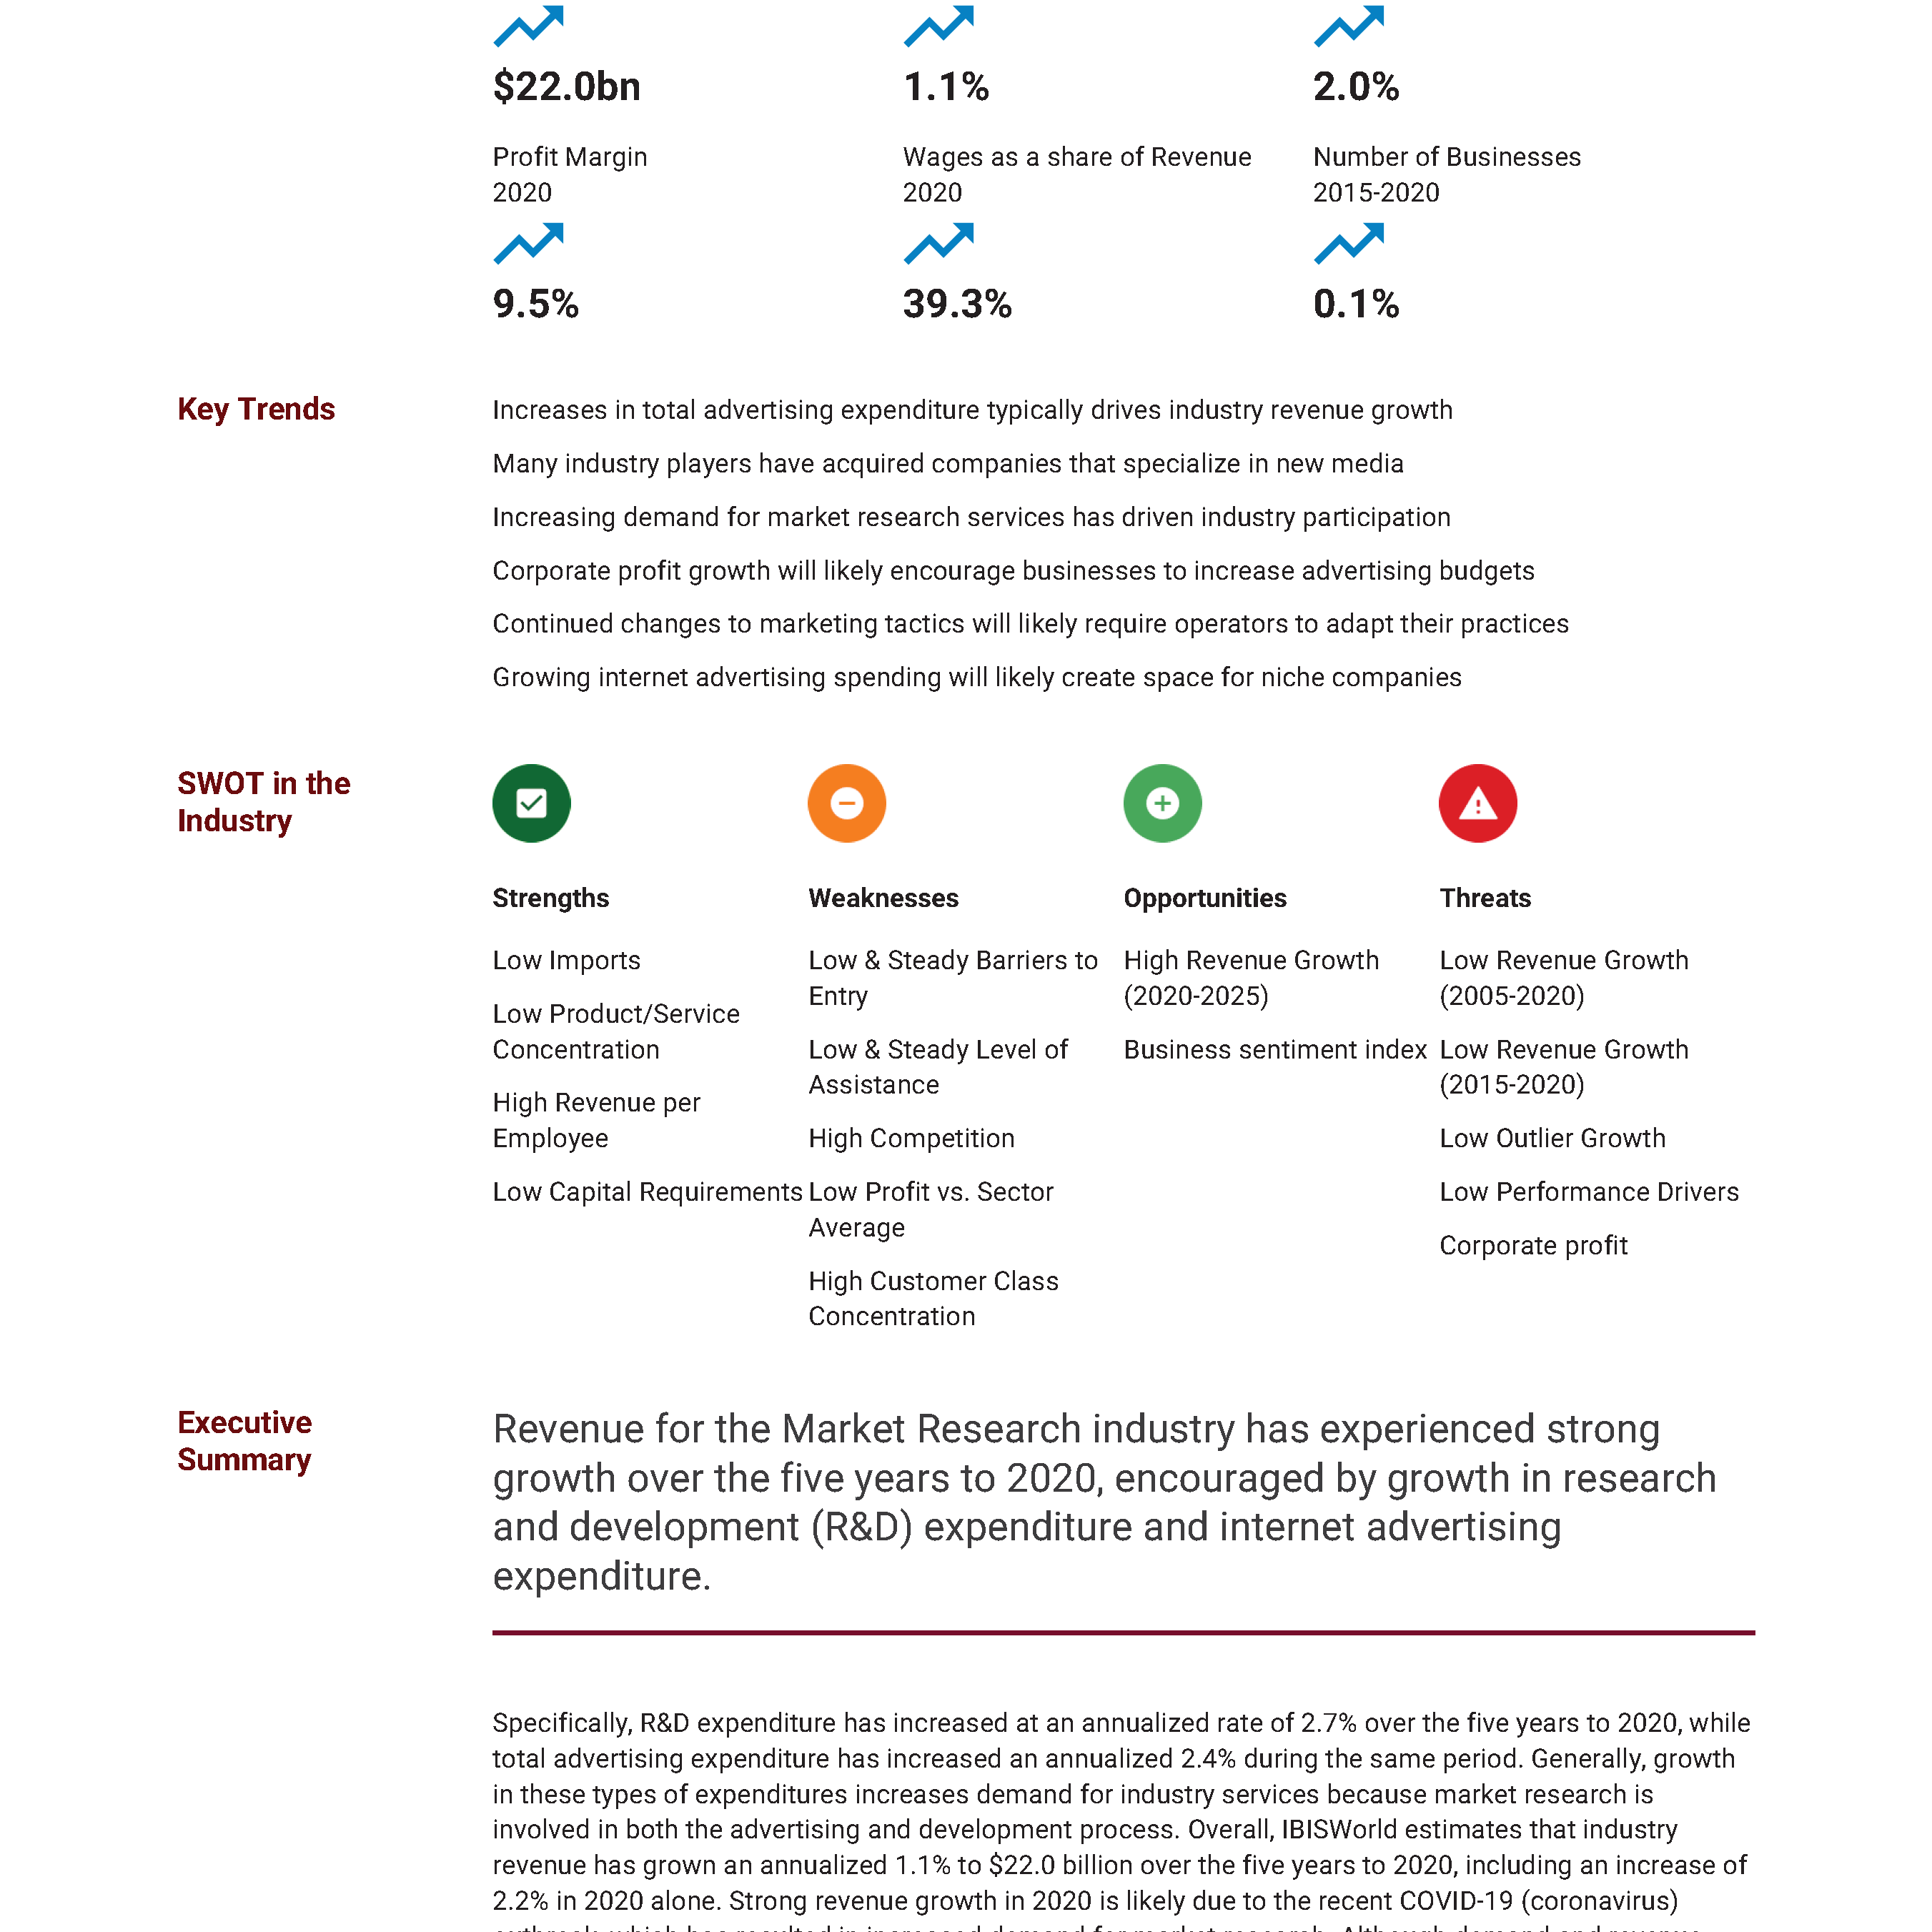 54191 Market Research in the US Industry Report (1)